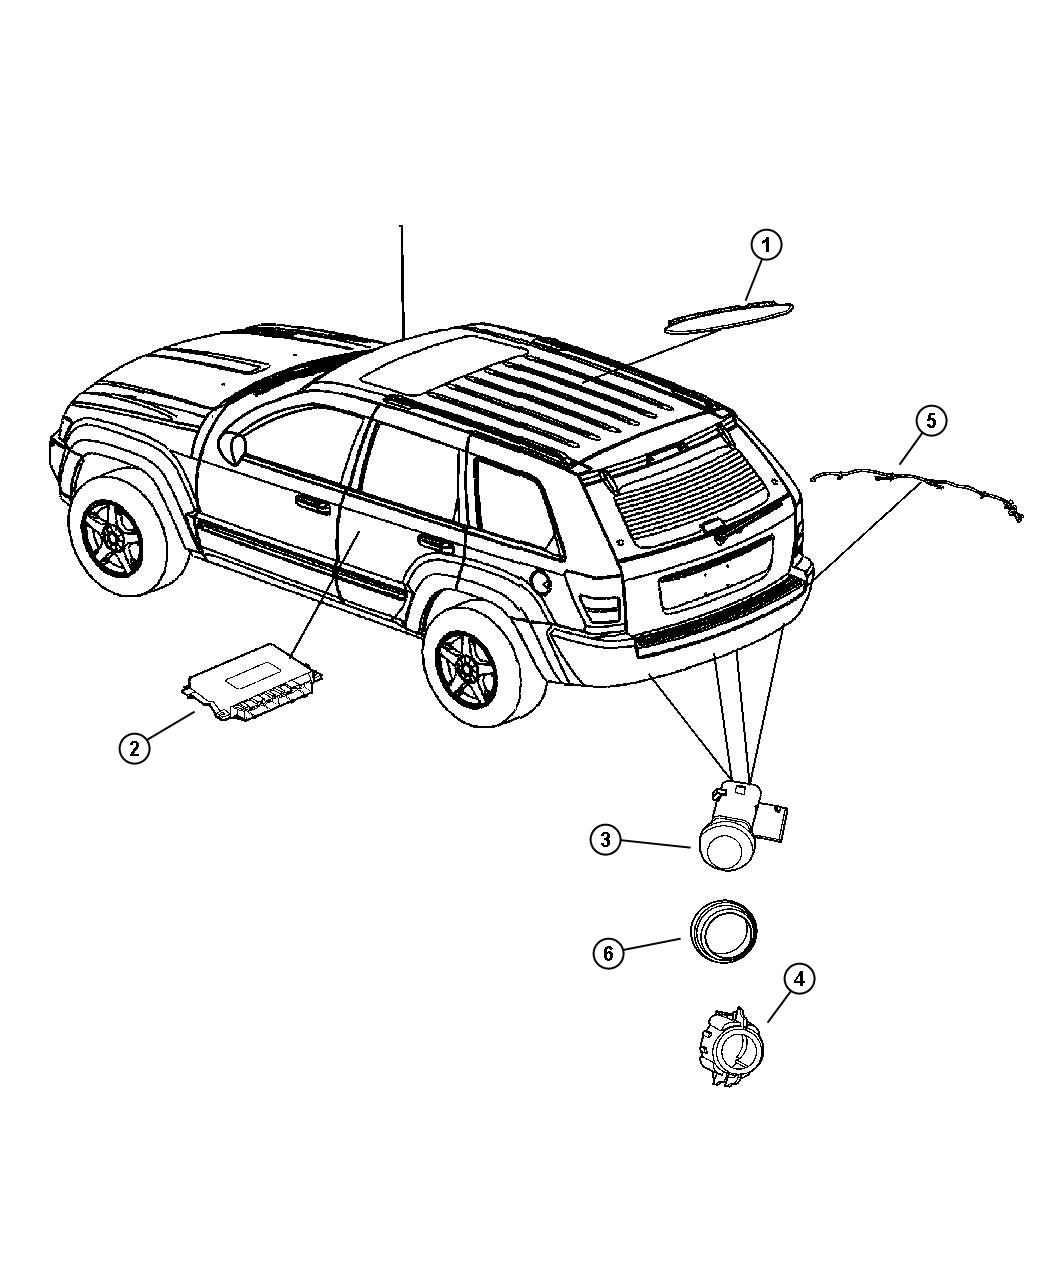 Jeep Grand Cherokee Module. Parking assist. [parksense